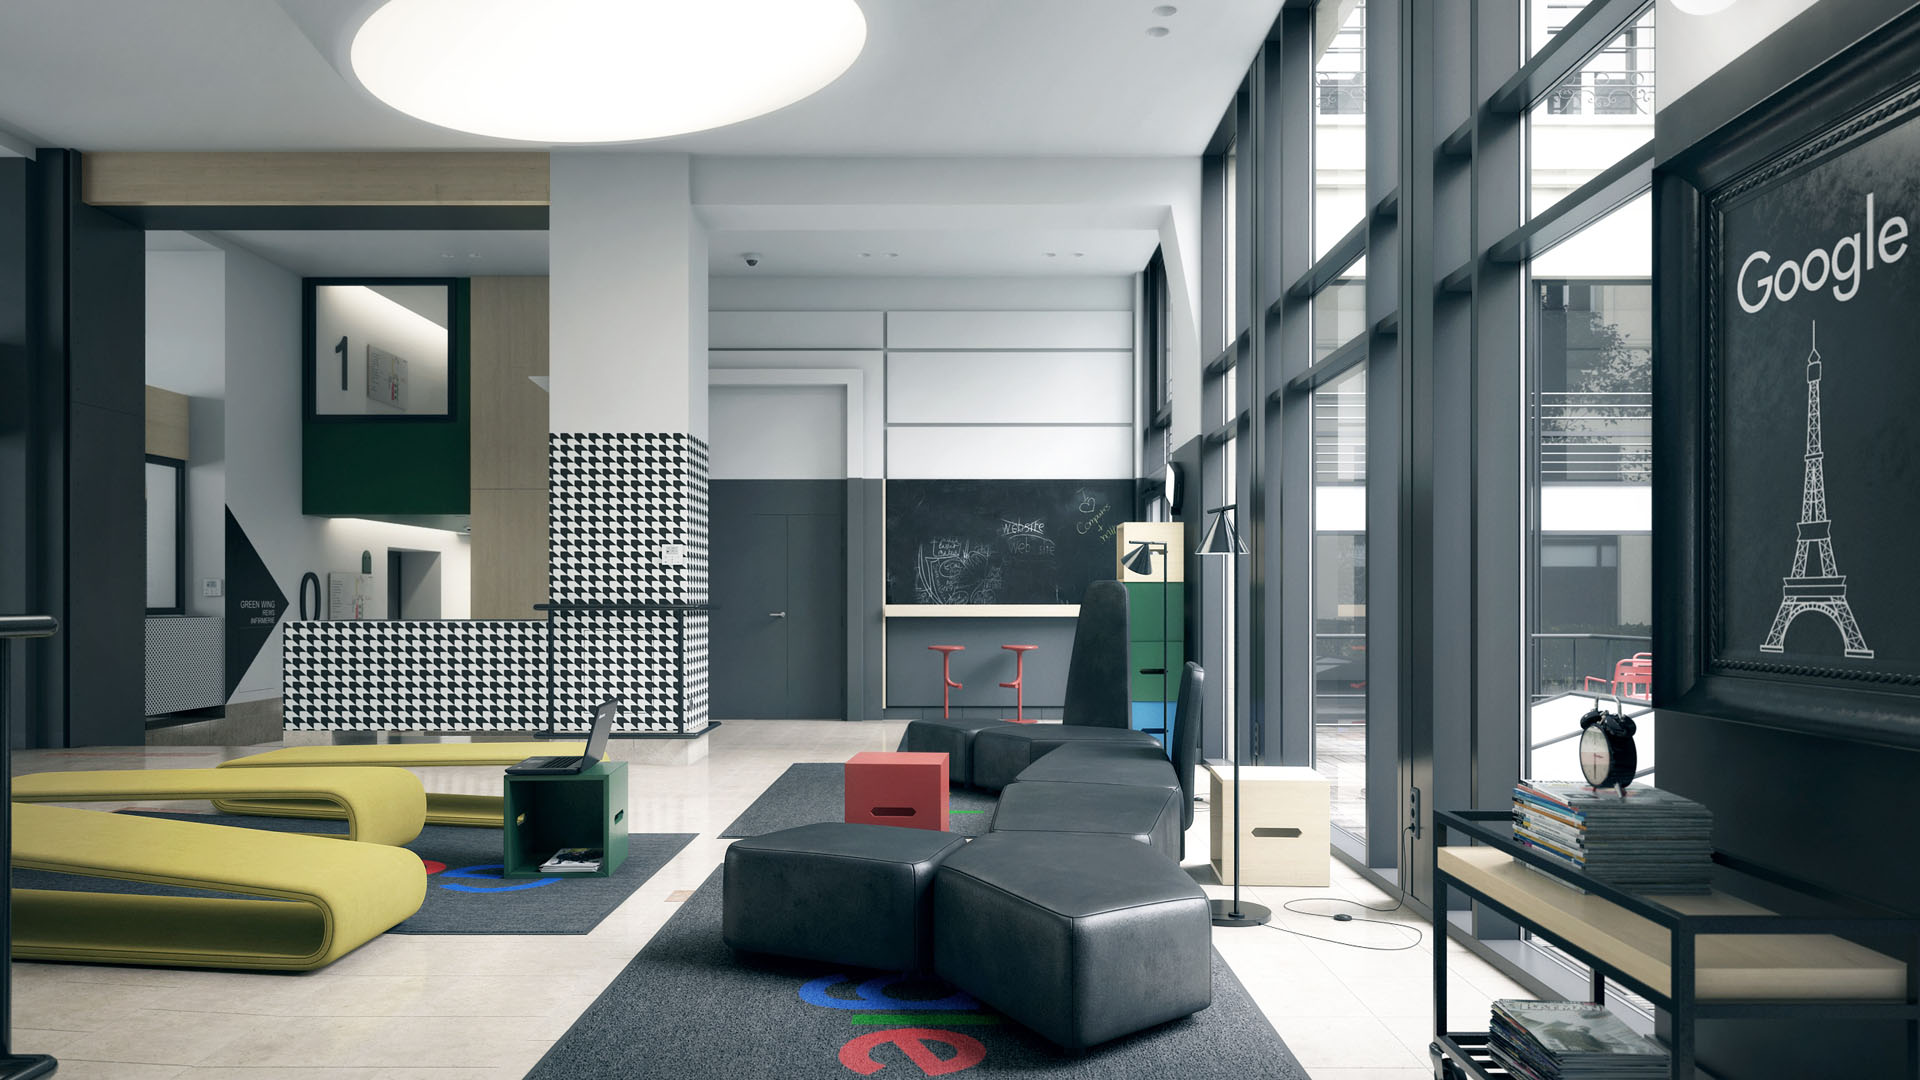 office lobby designs. Colorful Lounge Area With Black Leather Pouf And Patterned Wallpaper Office Lobby Designs